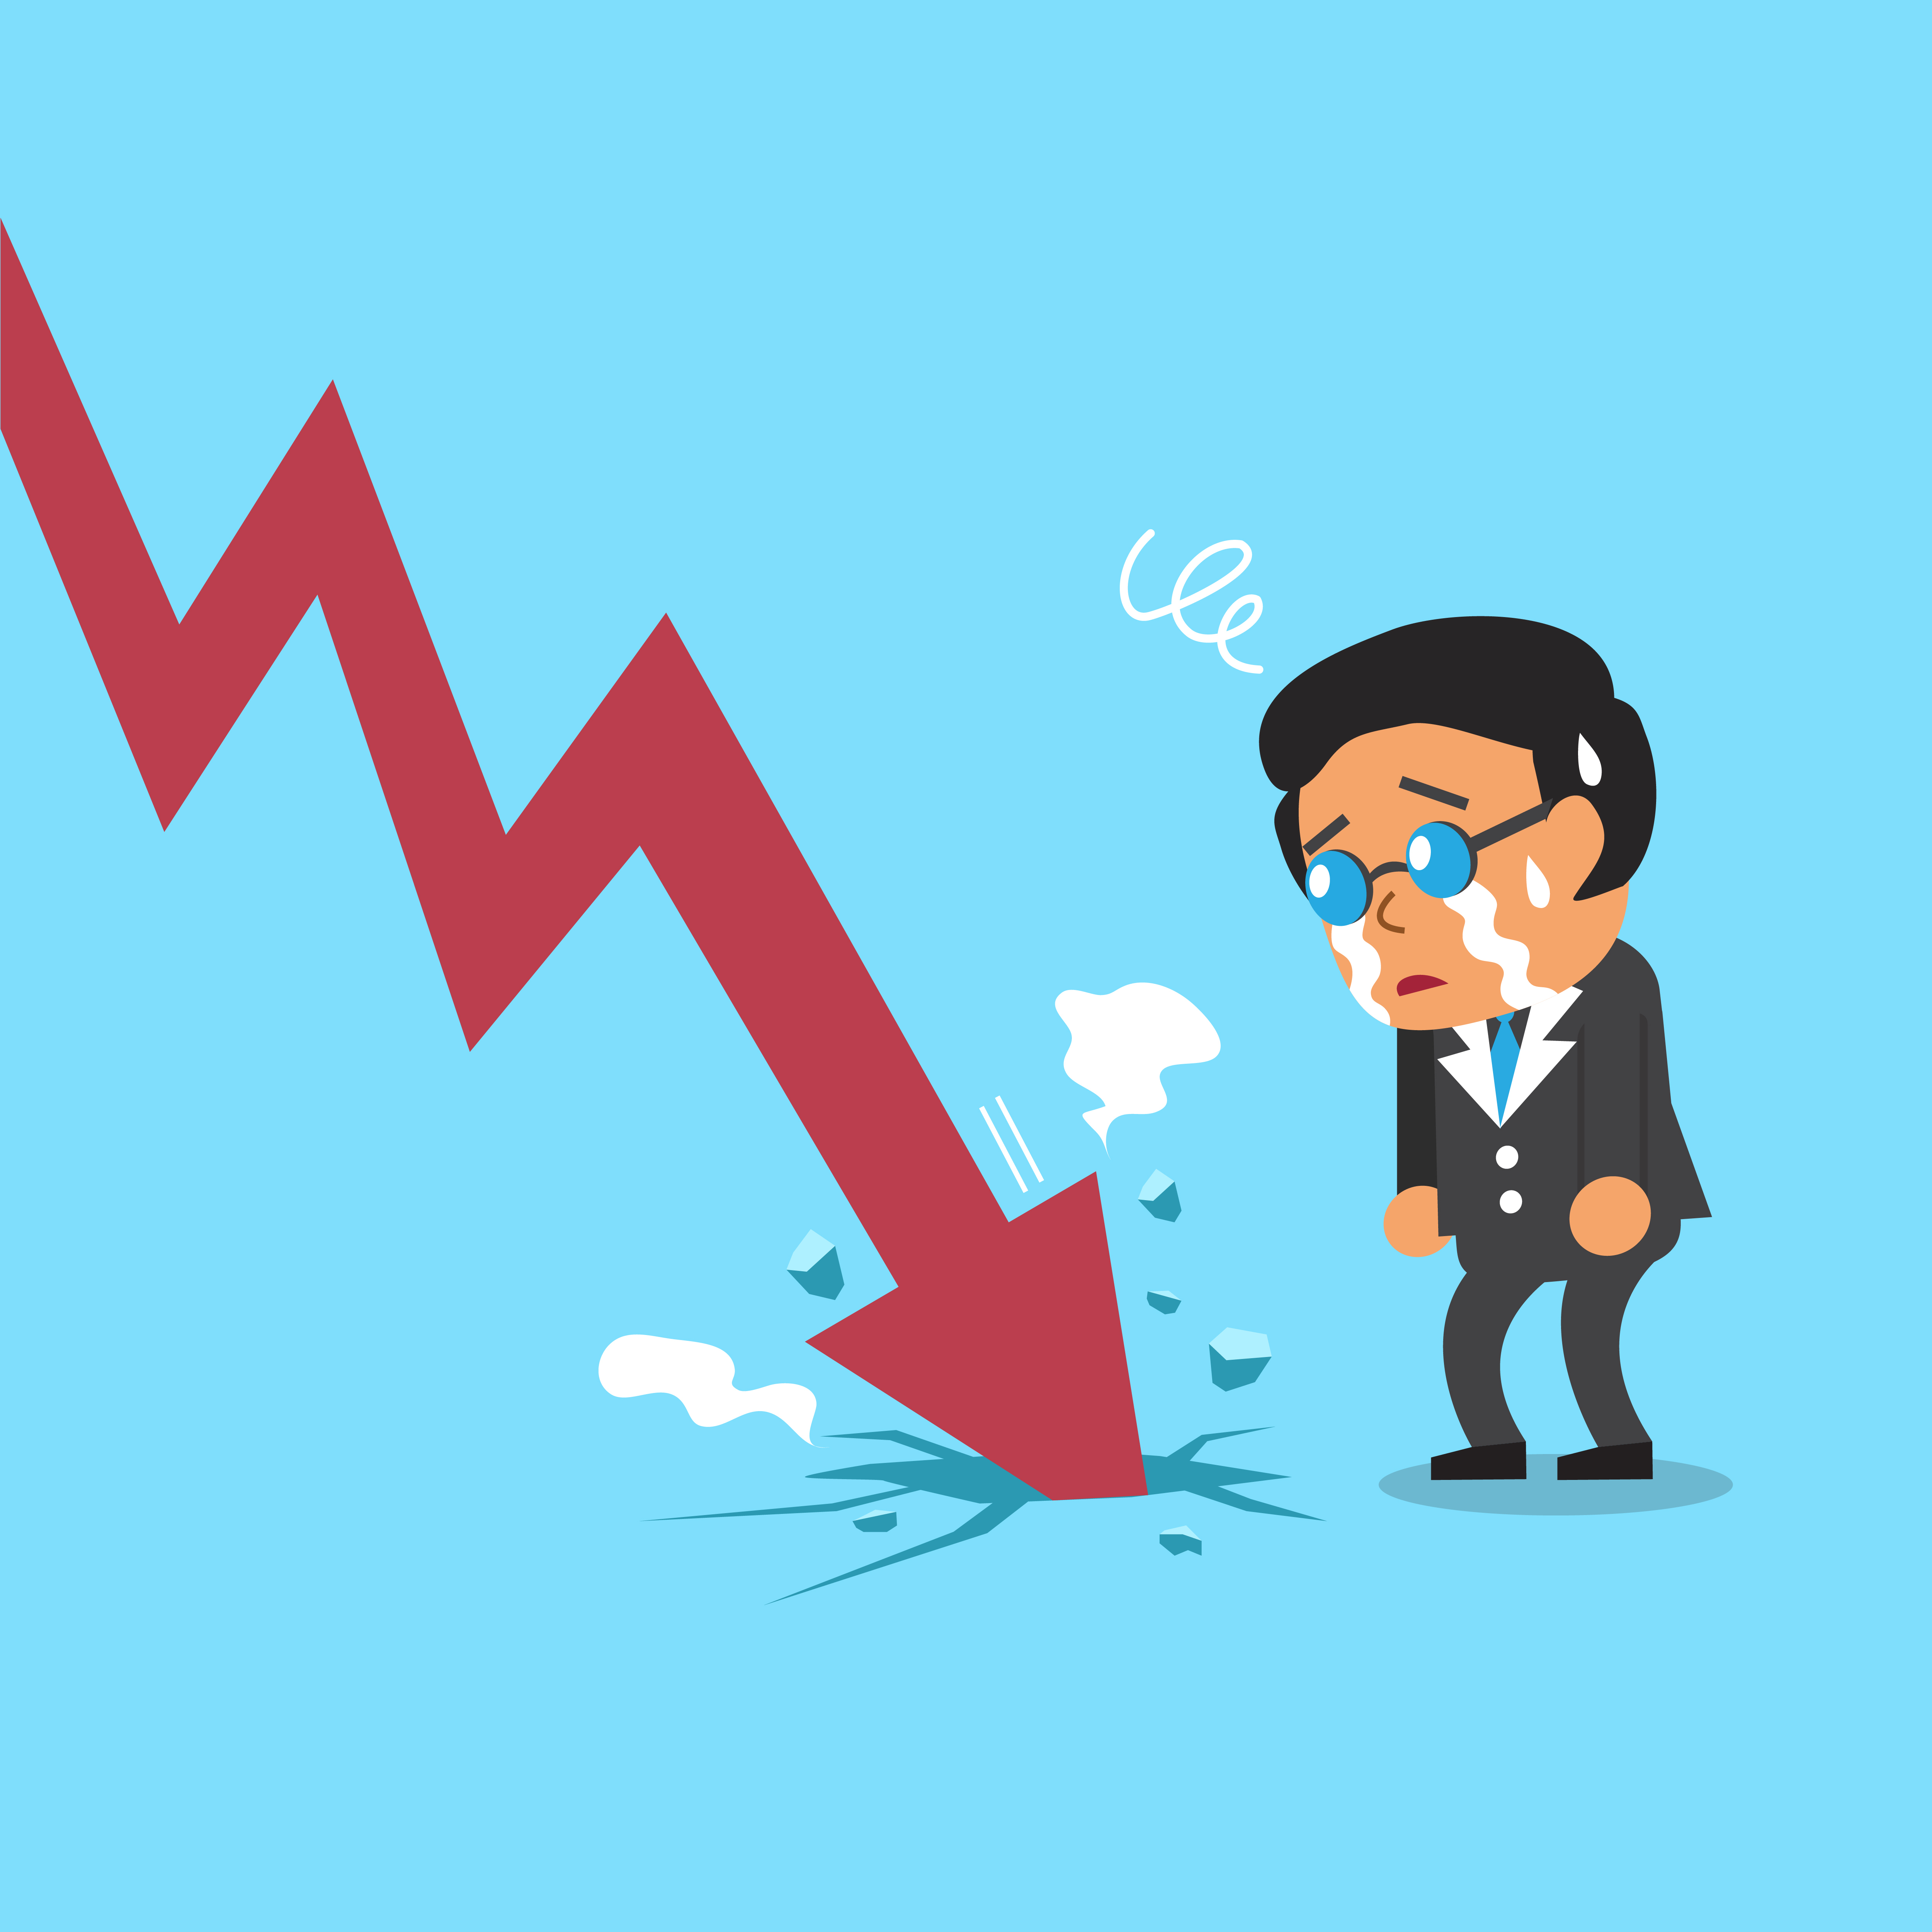 How Can You Lose More Money Than You Invest Shorting a Stock?